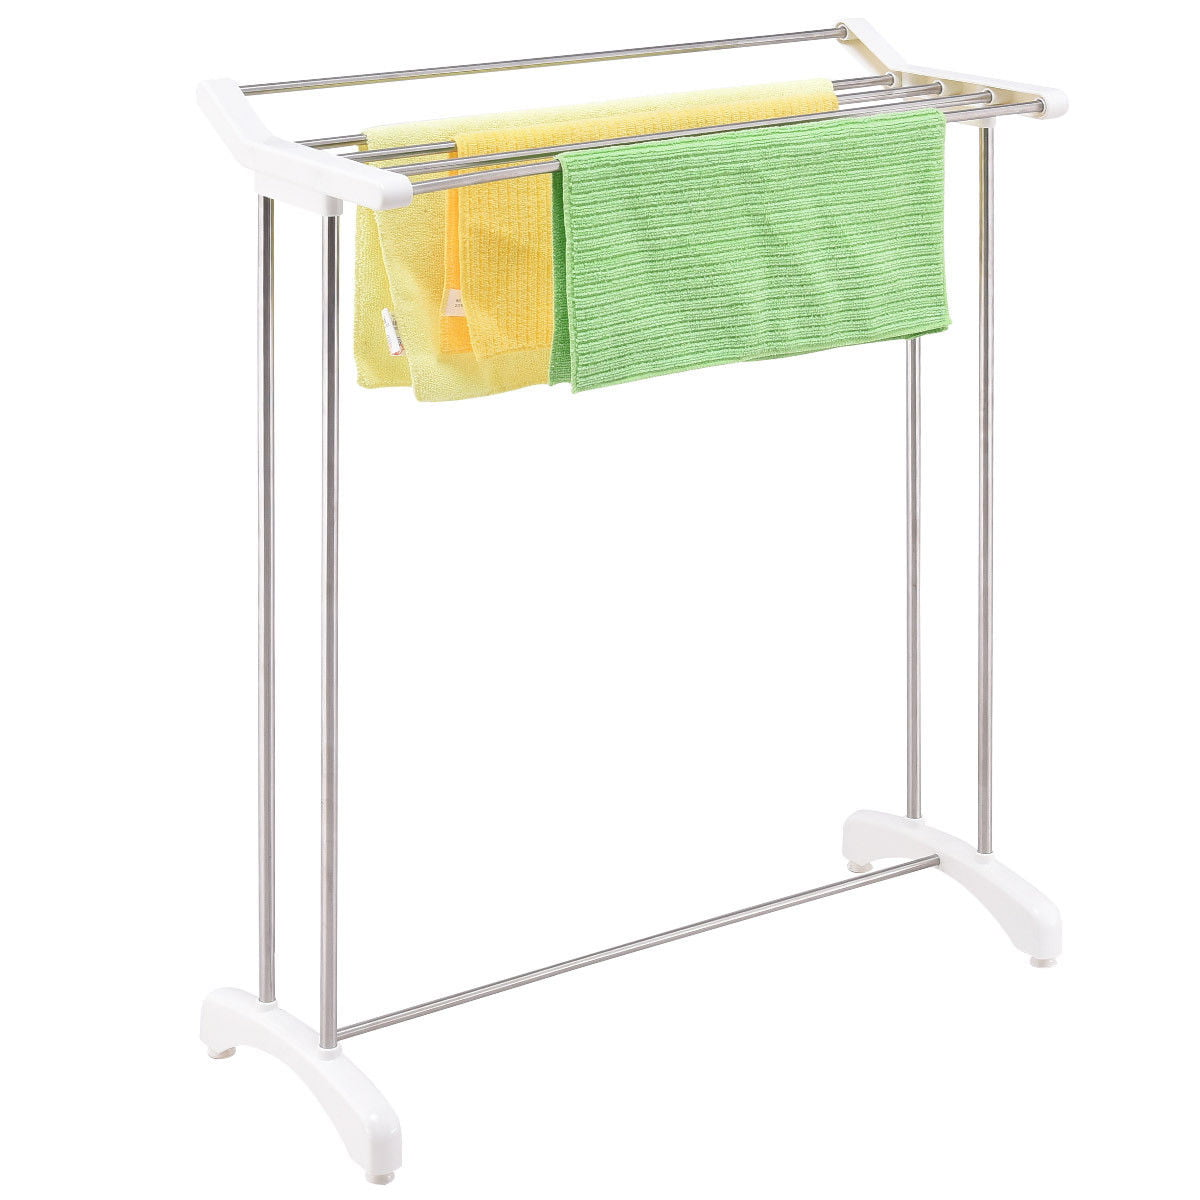 Click here to buy Gymax Free Standing Towel Rack Stand Stainless Steel Bathroom Organizer Hanger by Gymax.